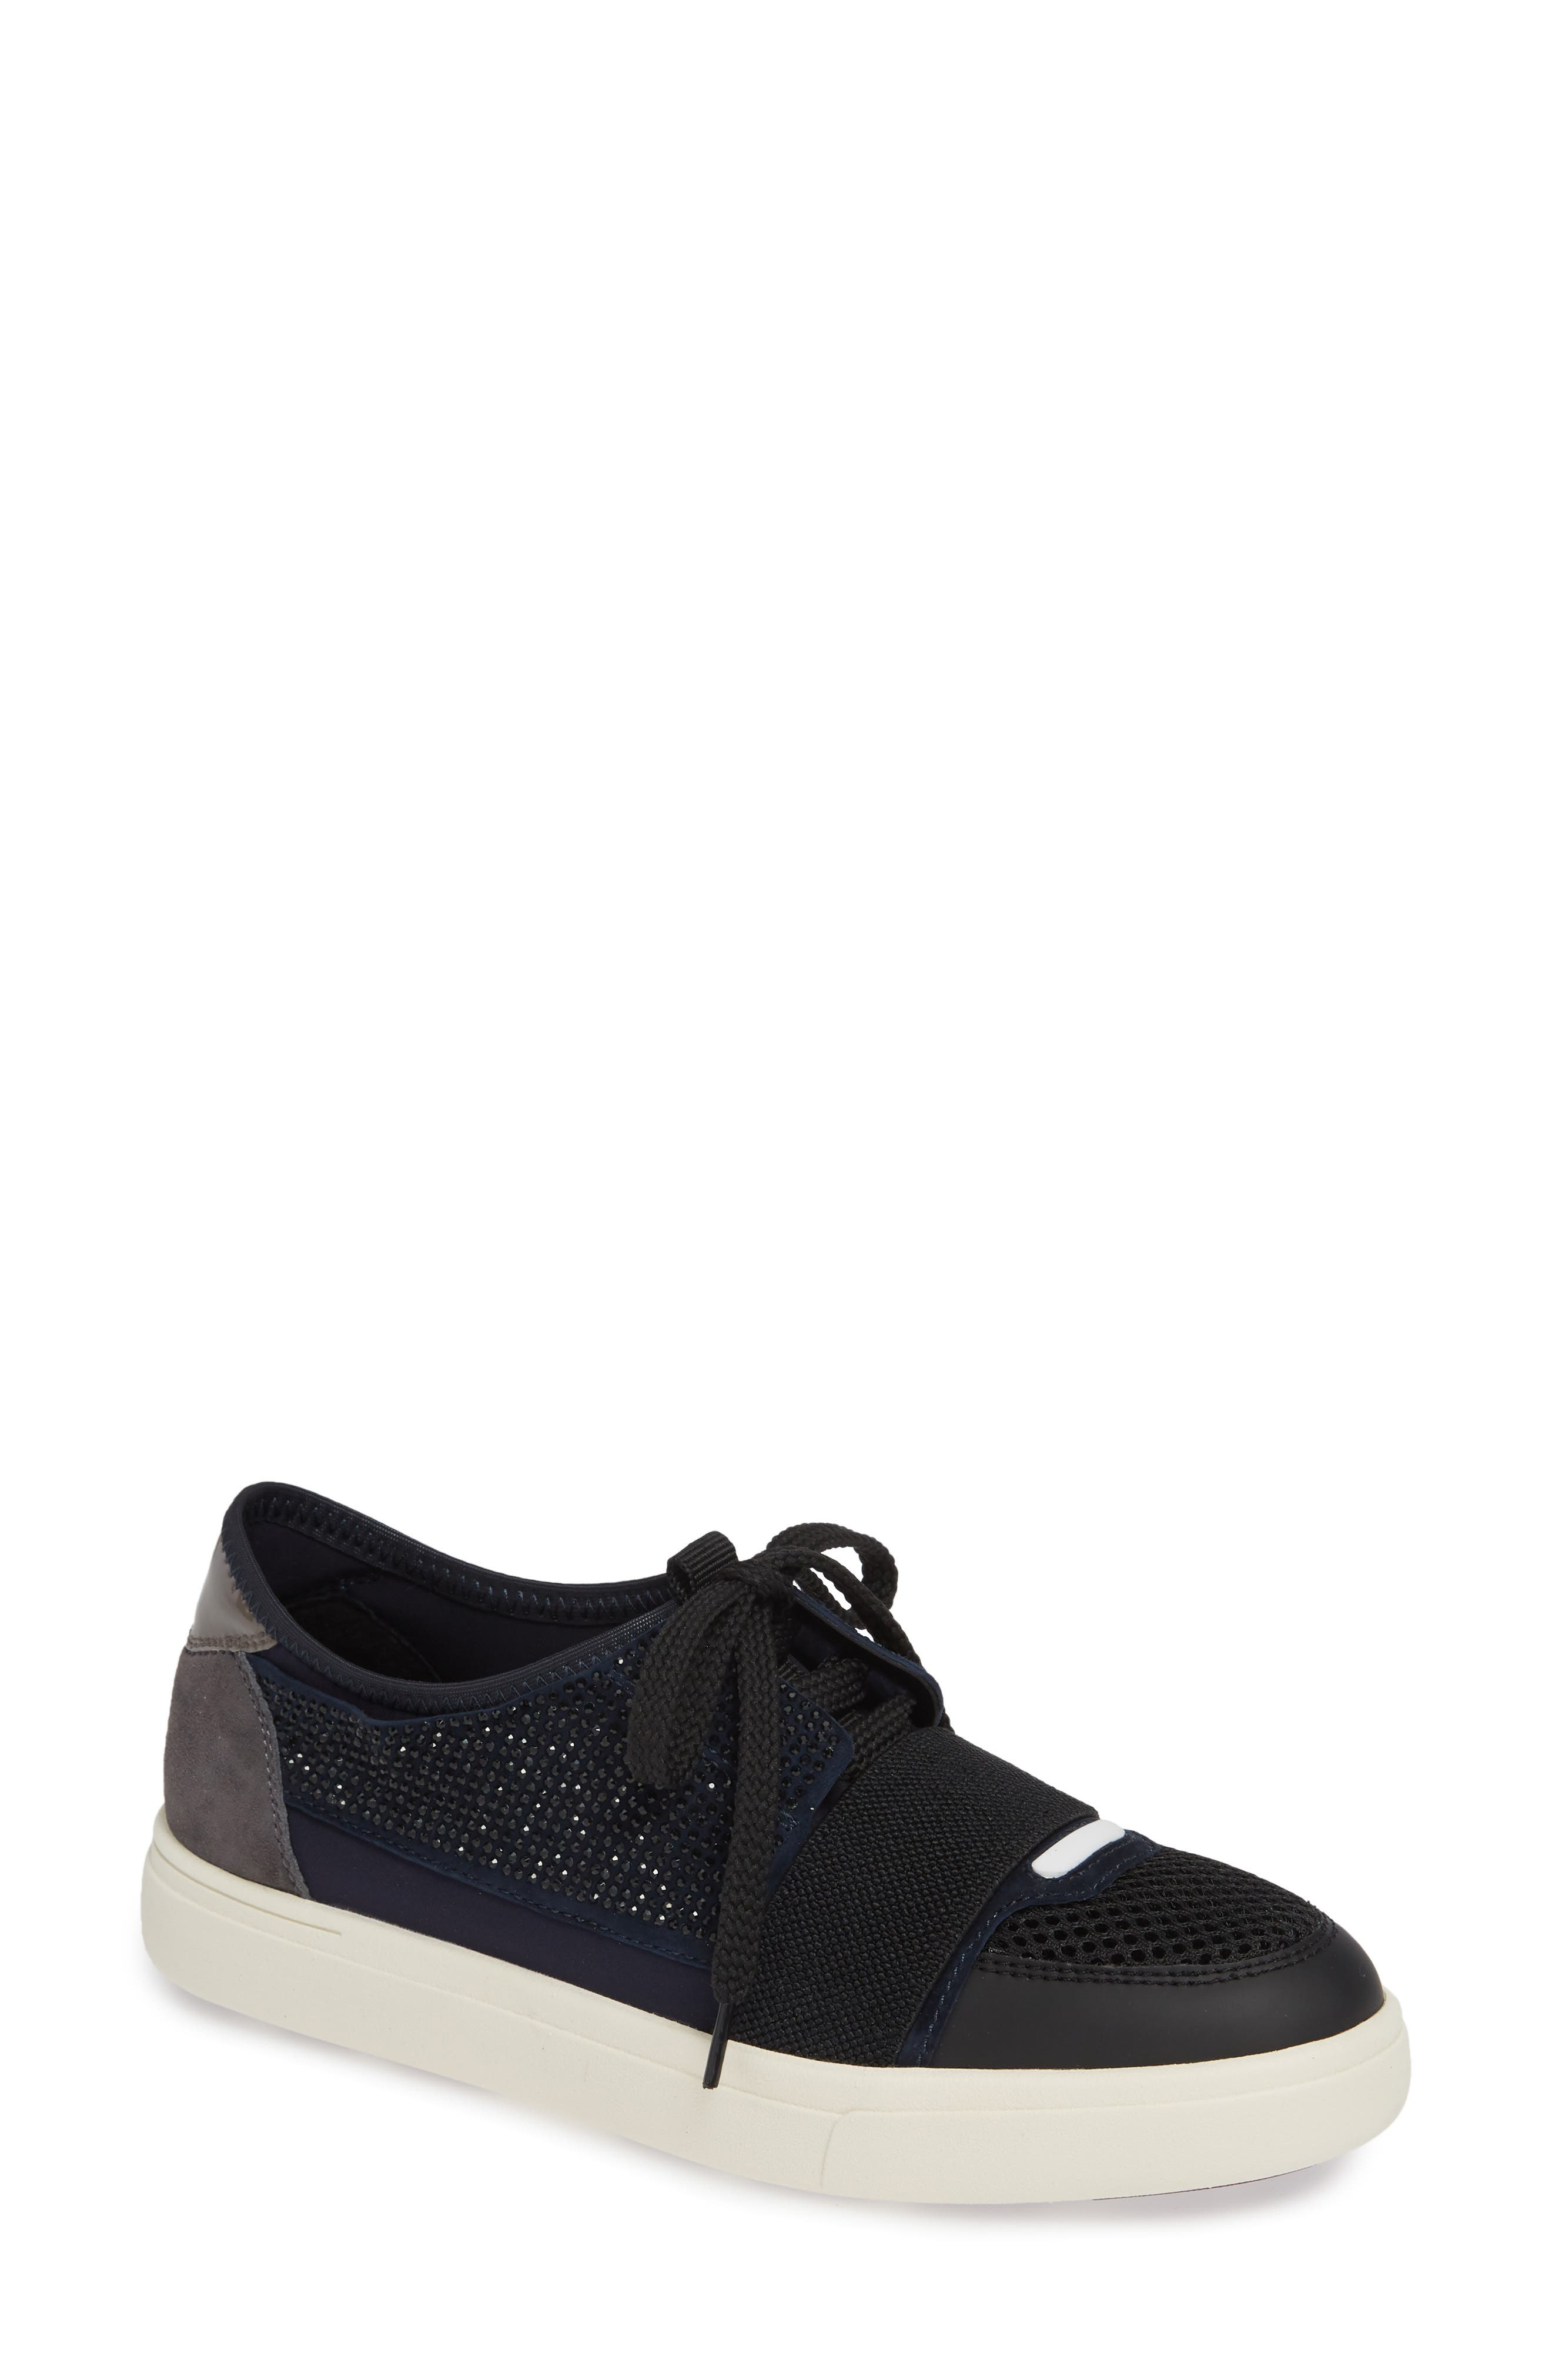 Onella Lace-Up Sneaker,                         Main,                         color, BLACK/ NAVY/ GREY MULTI